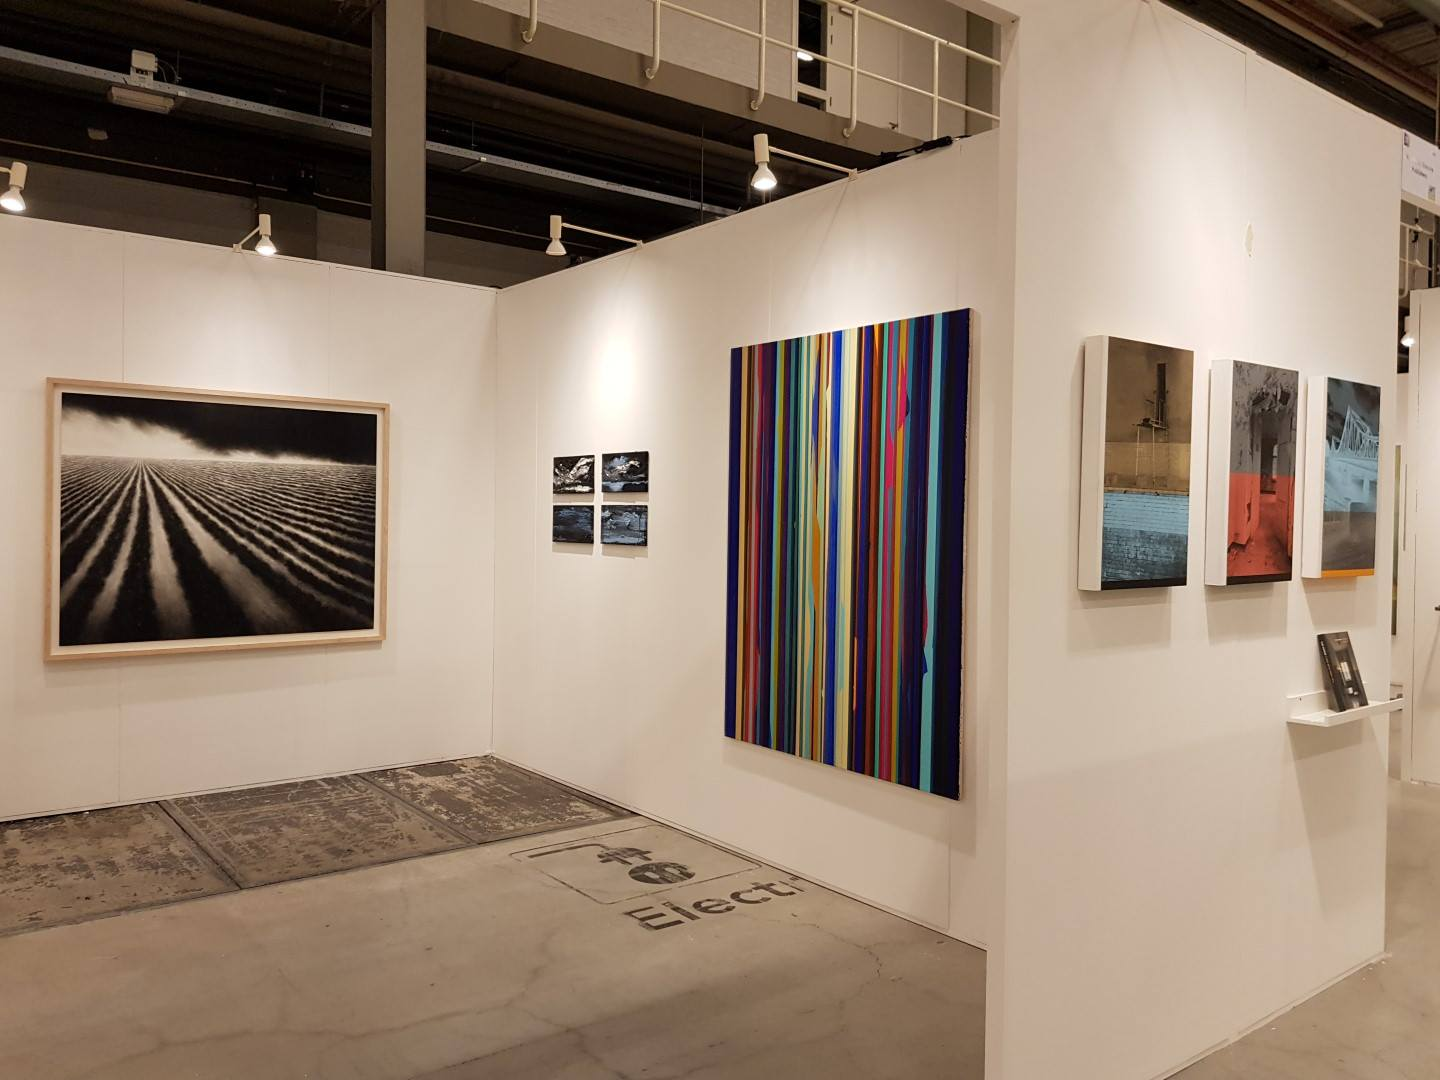 Art the Hague, Livingstone Gallery, Fokker Terminal, Den Haag (2018)